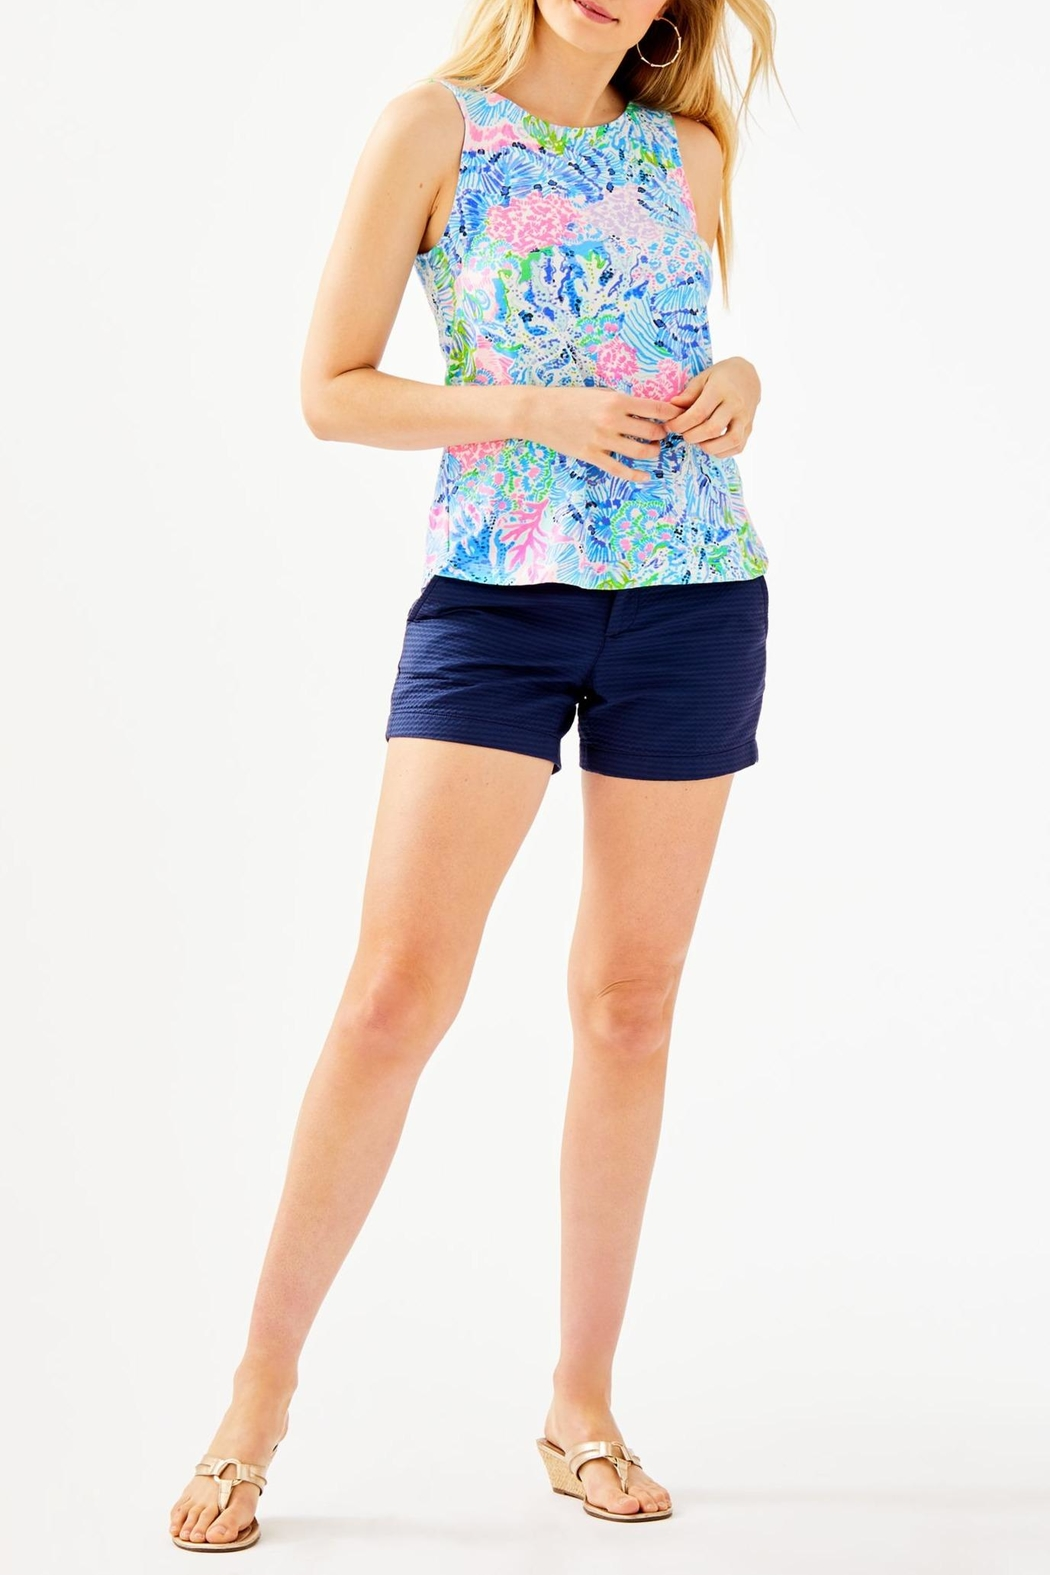 Lilly Pulitzer Kristen Top - Side Cropped Image